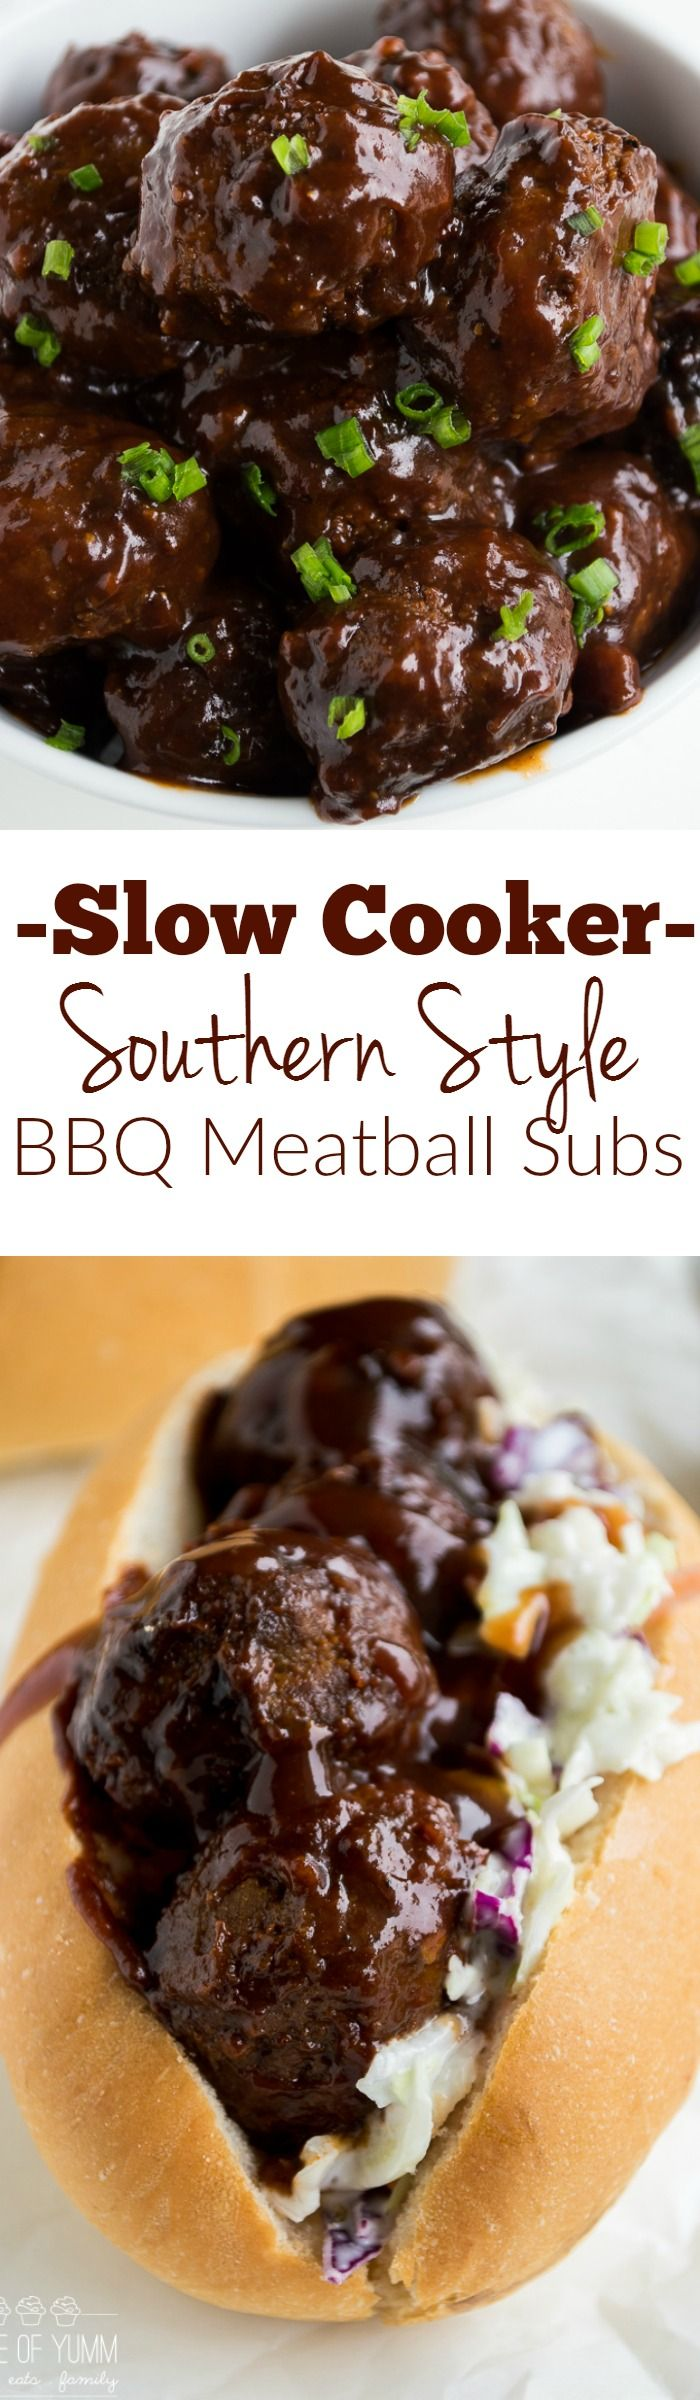 meatball sub got a southern makeover with sweet and tangy BBQ sauce and a creamy cole slaw! Perfect family dinner recipe! Plus can be made in the slow cooker!  #KCMasterpiece #ad @KCMBBQ